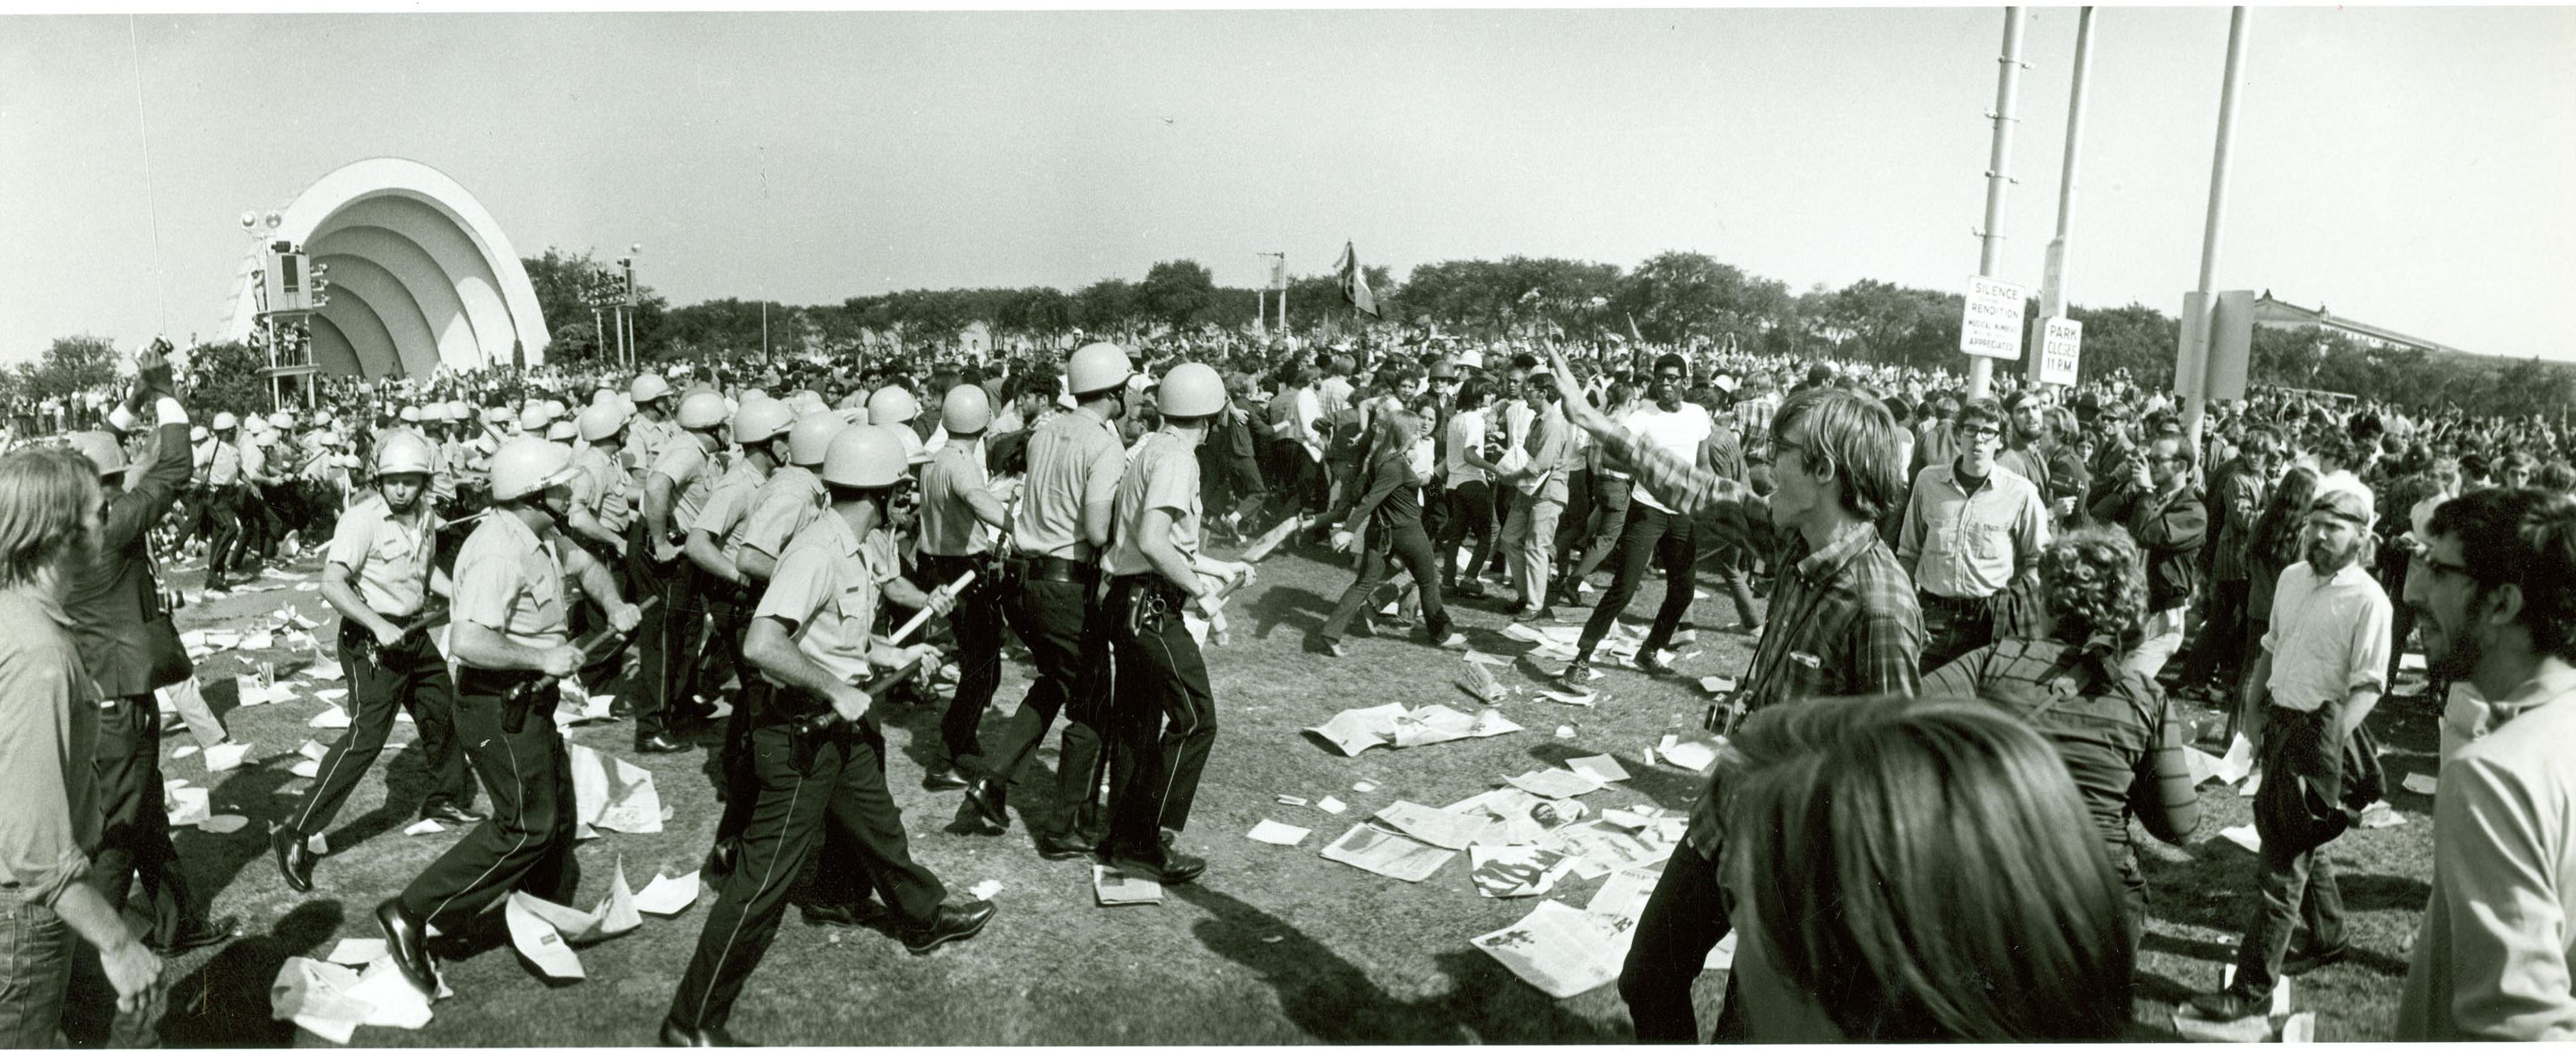 Image: Protestors and Chicago Police Officers in Grant Park, August 28, 1968. Source: National Archives; ARC identifier: 6210767.